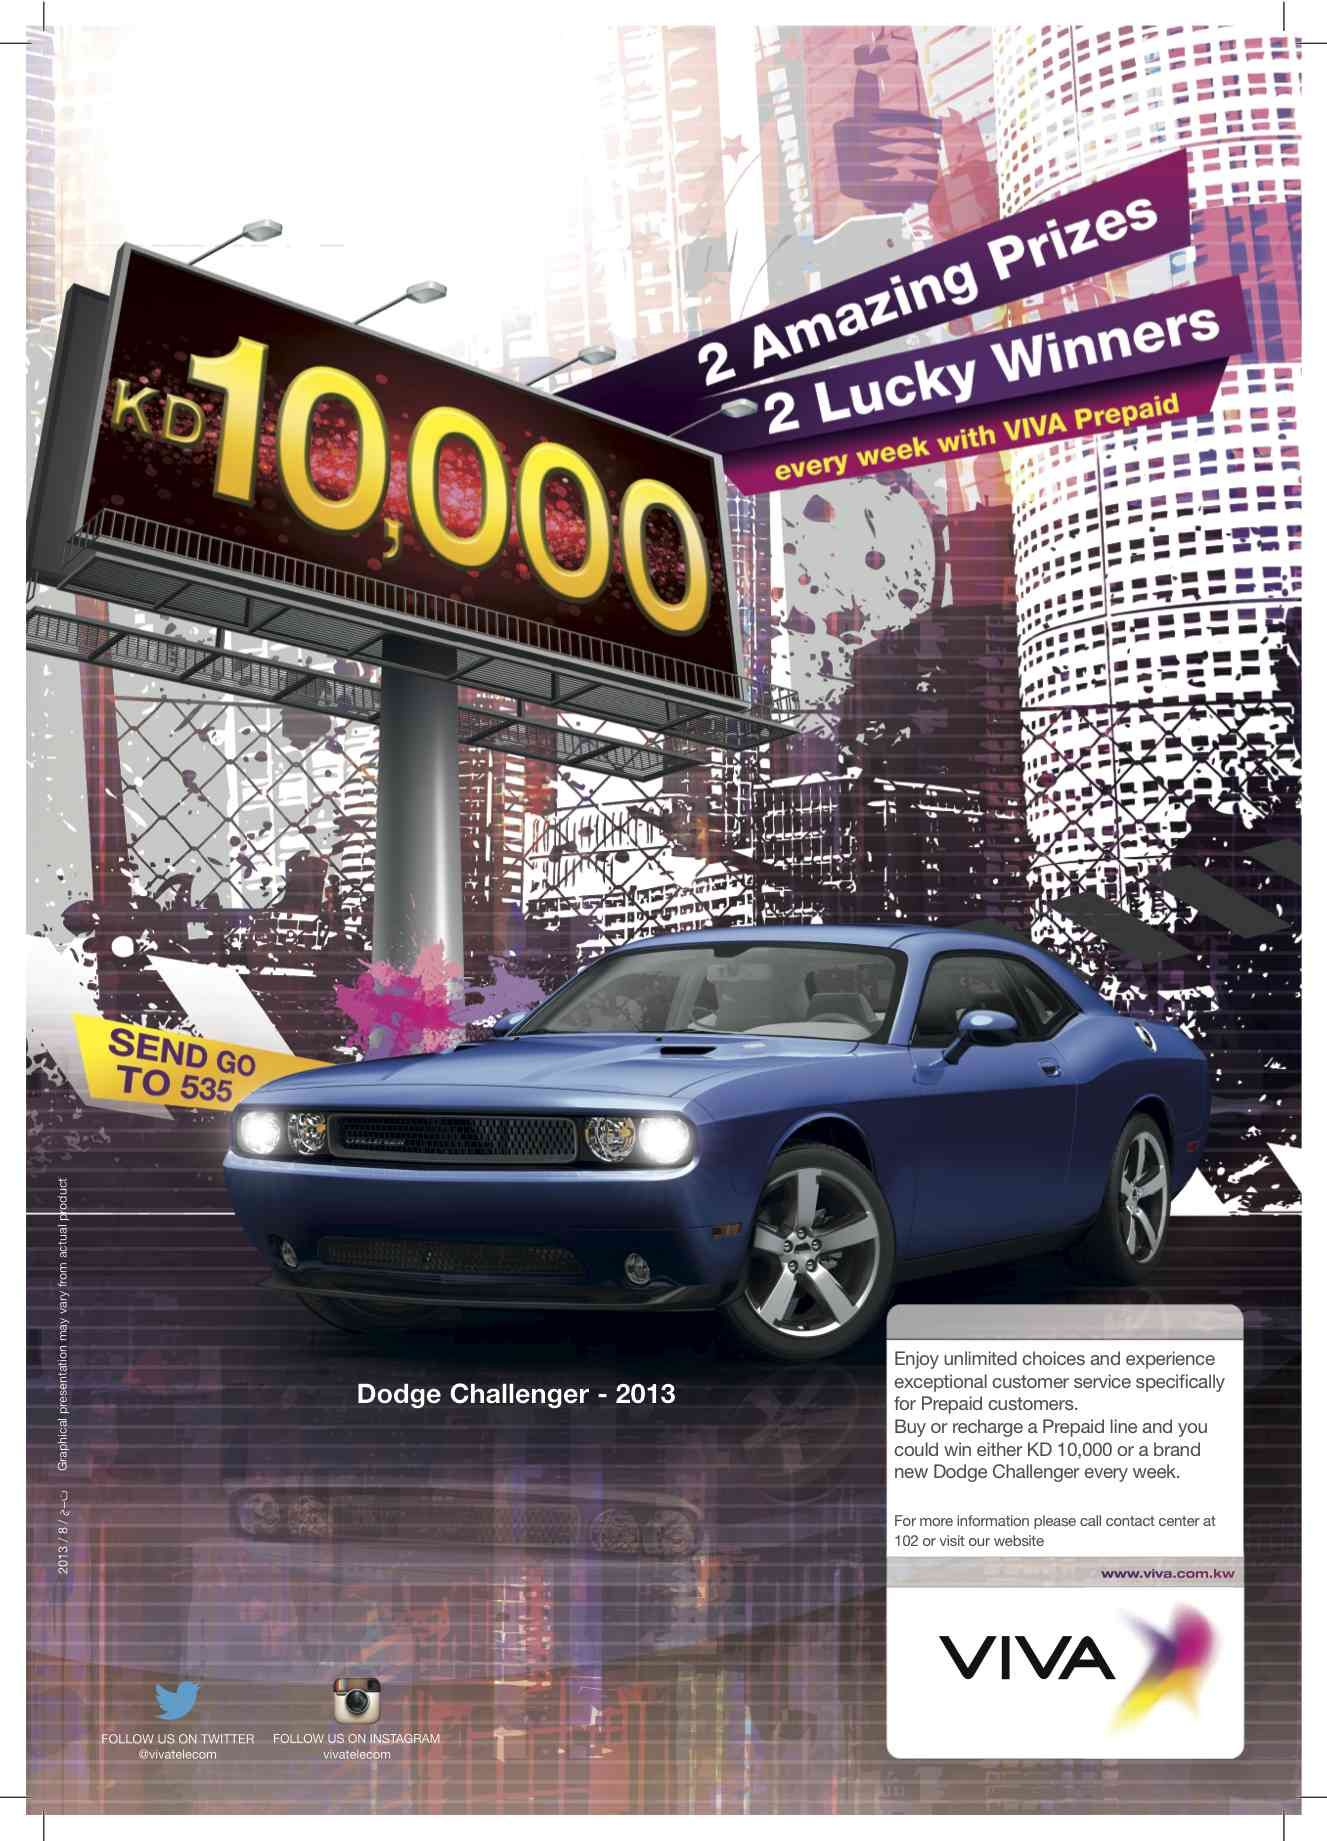 Viva Announced Today The Final 2012 Winners Of The Win A Car